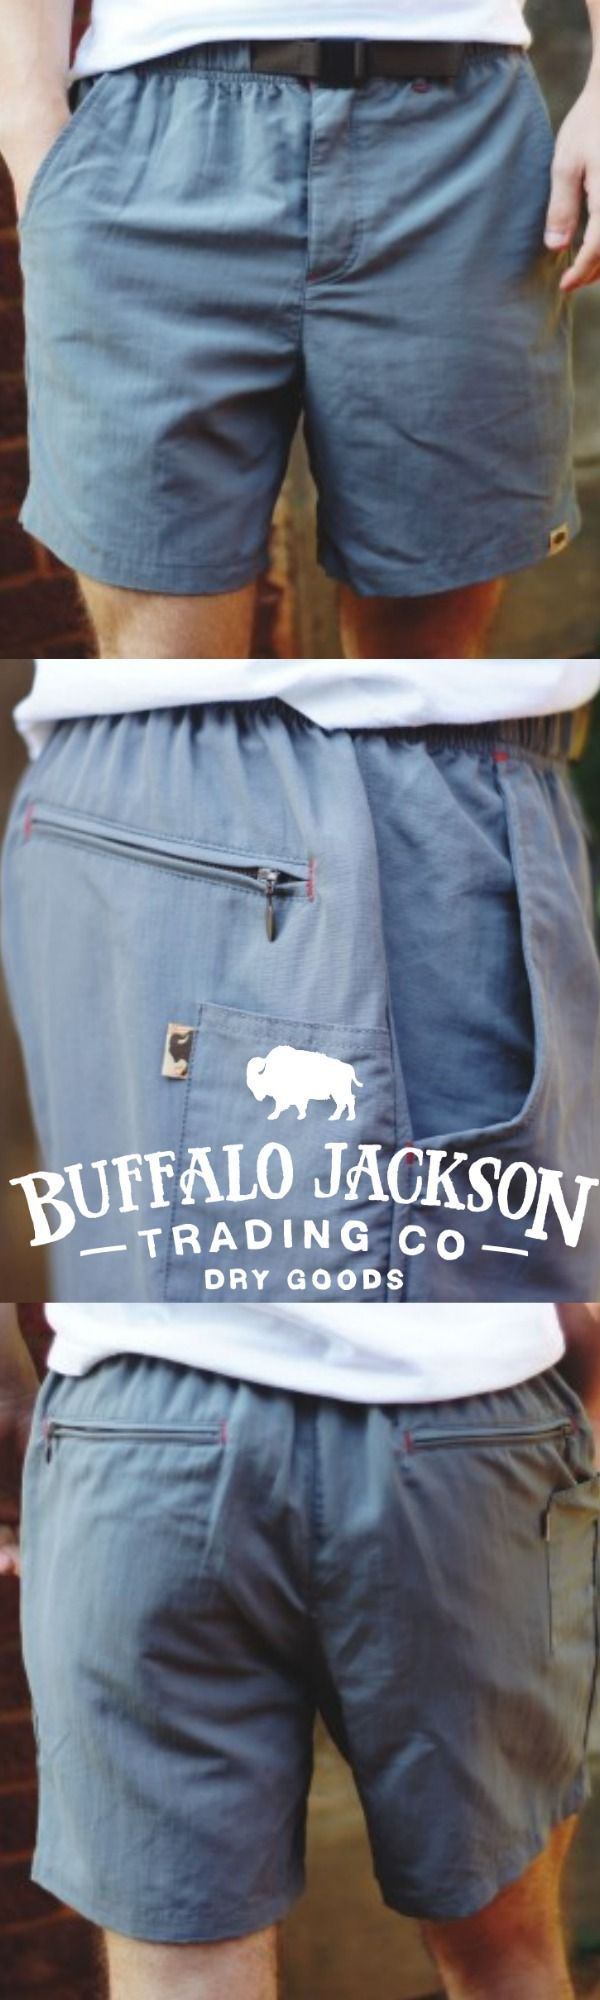 Riverdale Mens Outdoor Belted Shorts by Buffalo Jackson Trading Co. The 100% quick dry nylon is perfect for adventures on land or water. Also available in red or blue. (Shown here in gray.)